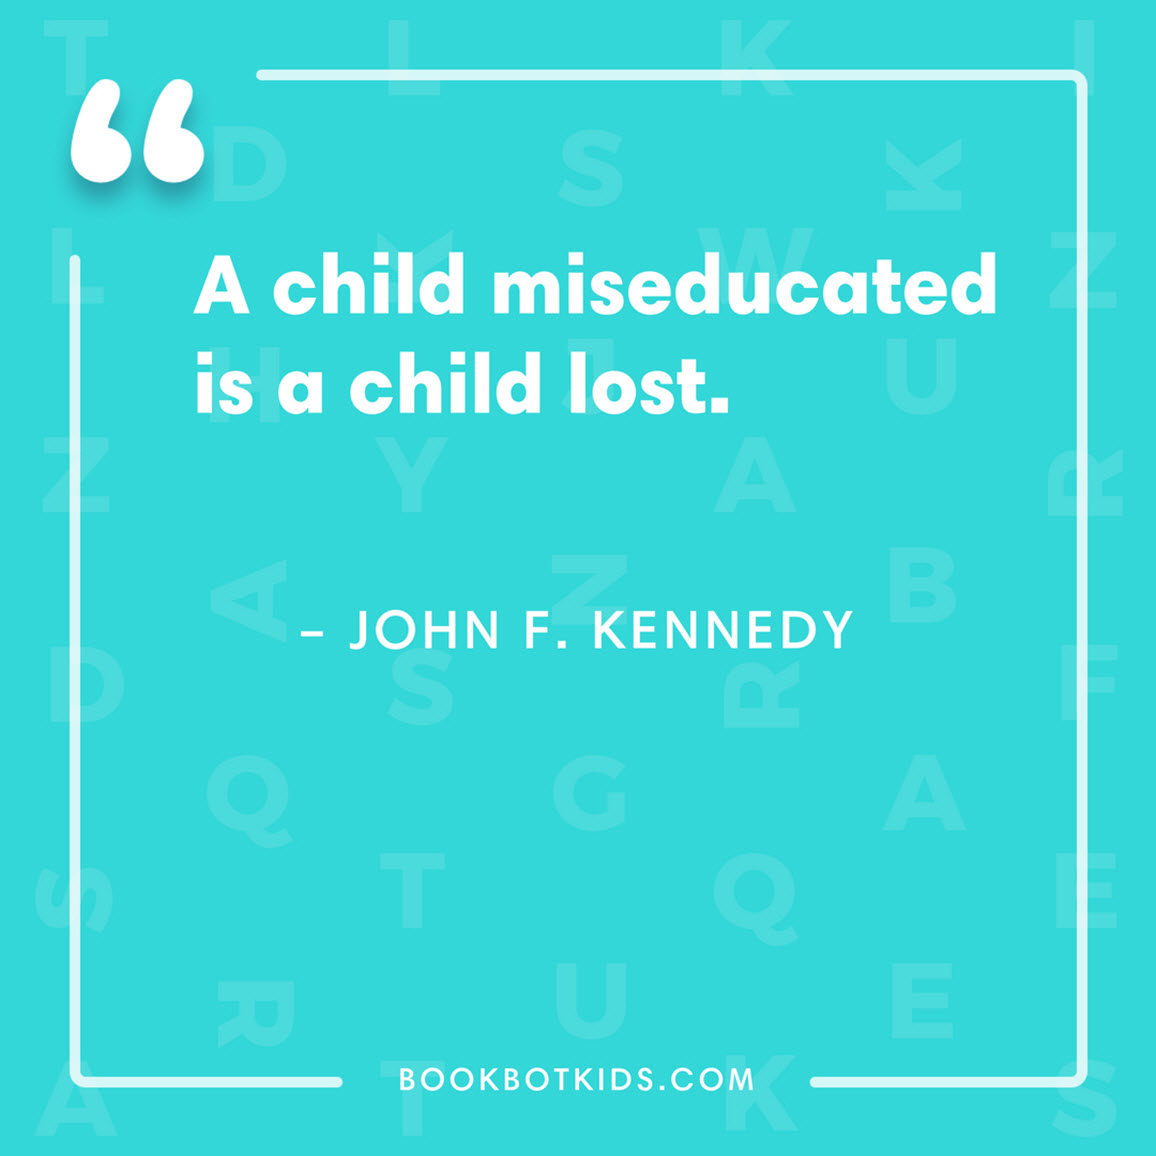 A child miseducated is a child lost. – John F. Kennedy